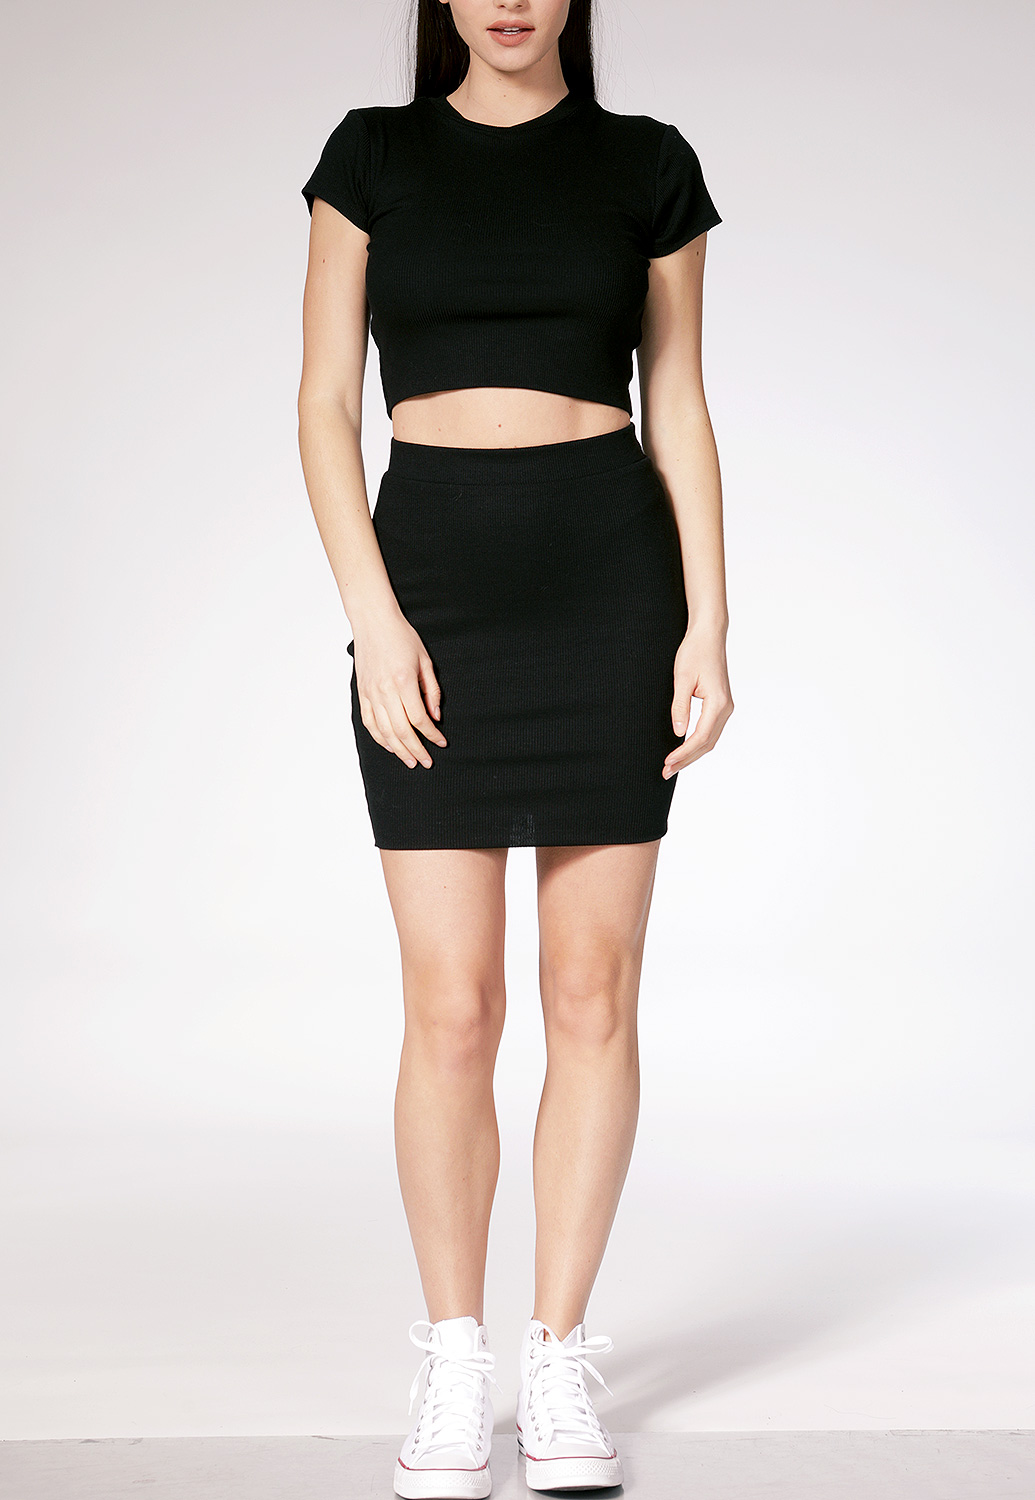 Ribbed Crop Top W/Skirt